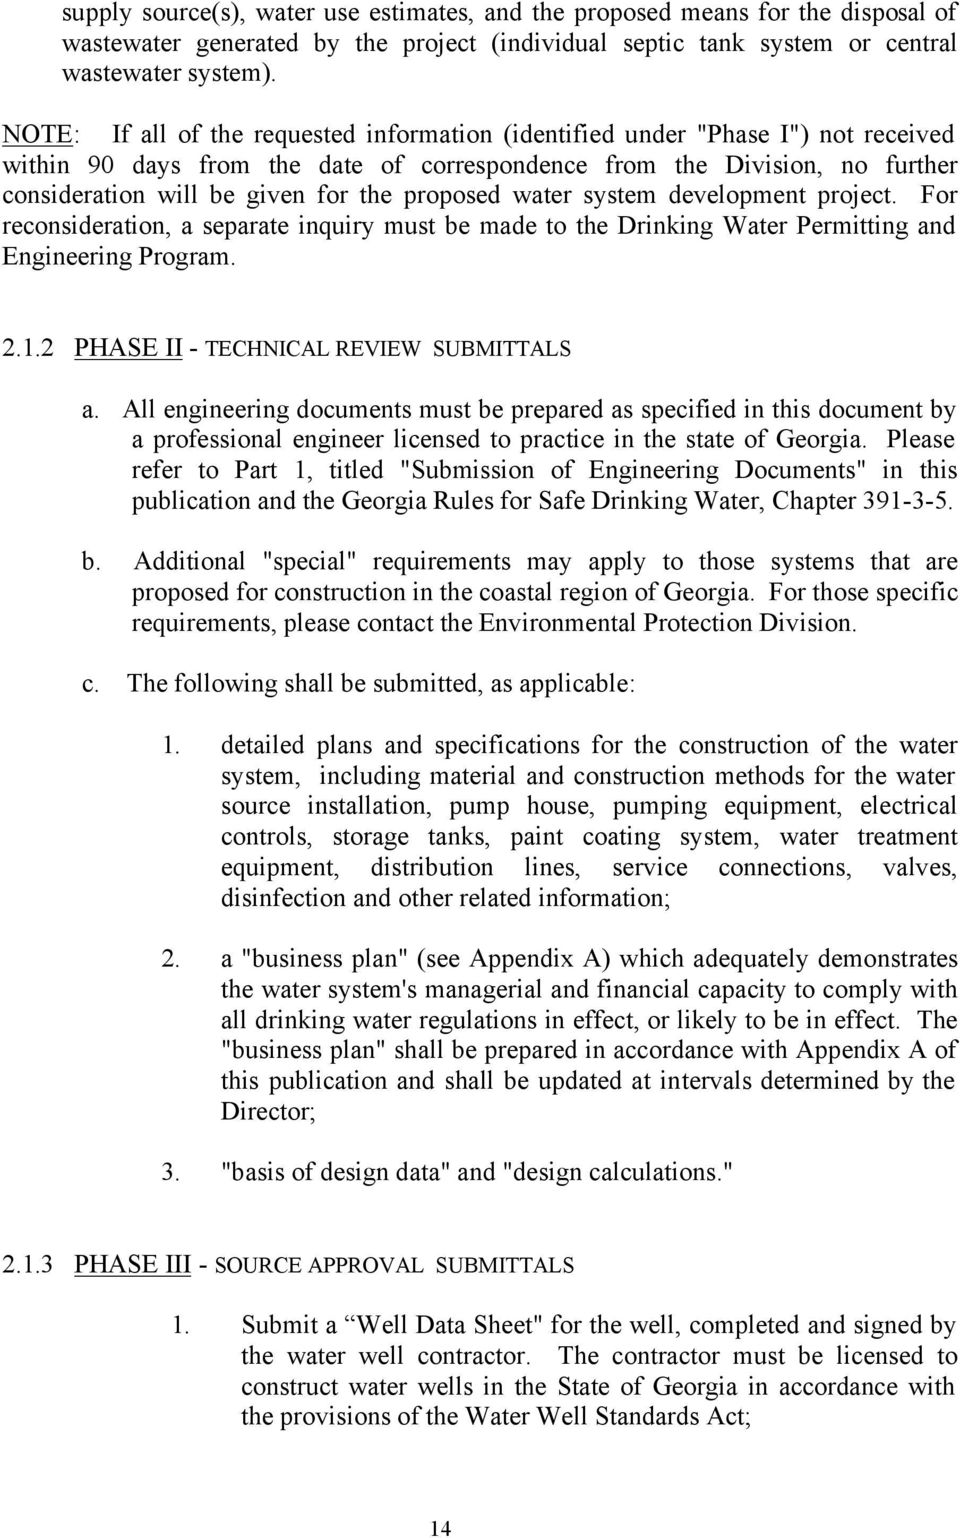 Proposed Water System Development Project For Reconsideration A Separate Inquiry Must Be Made To